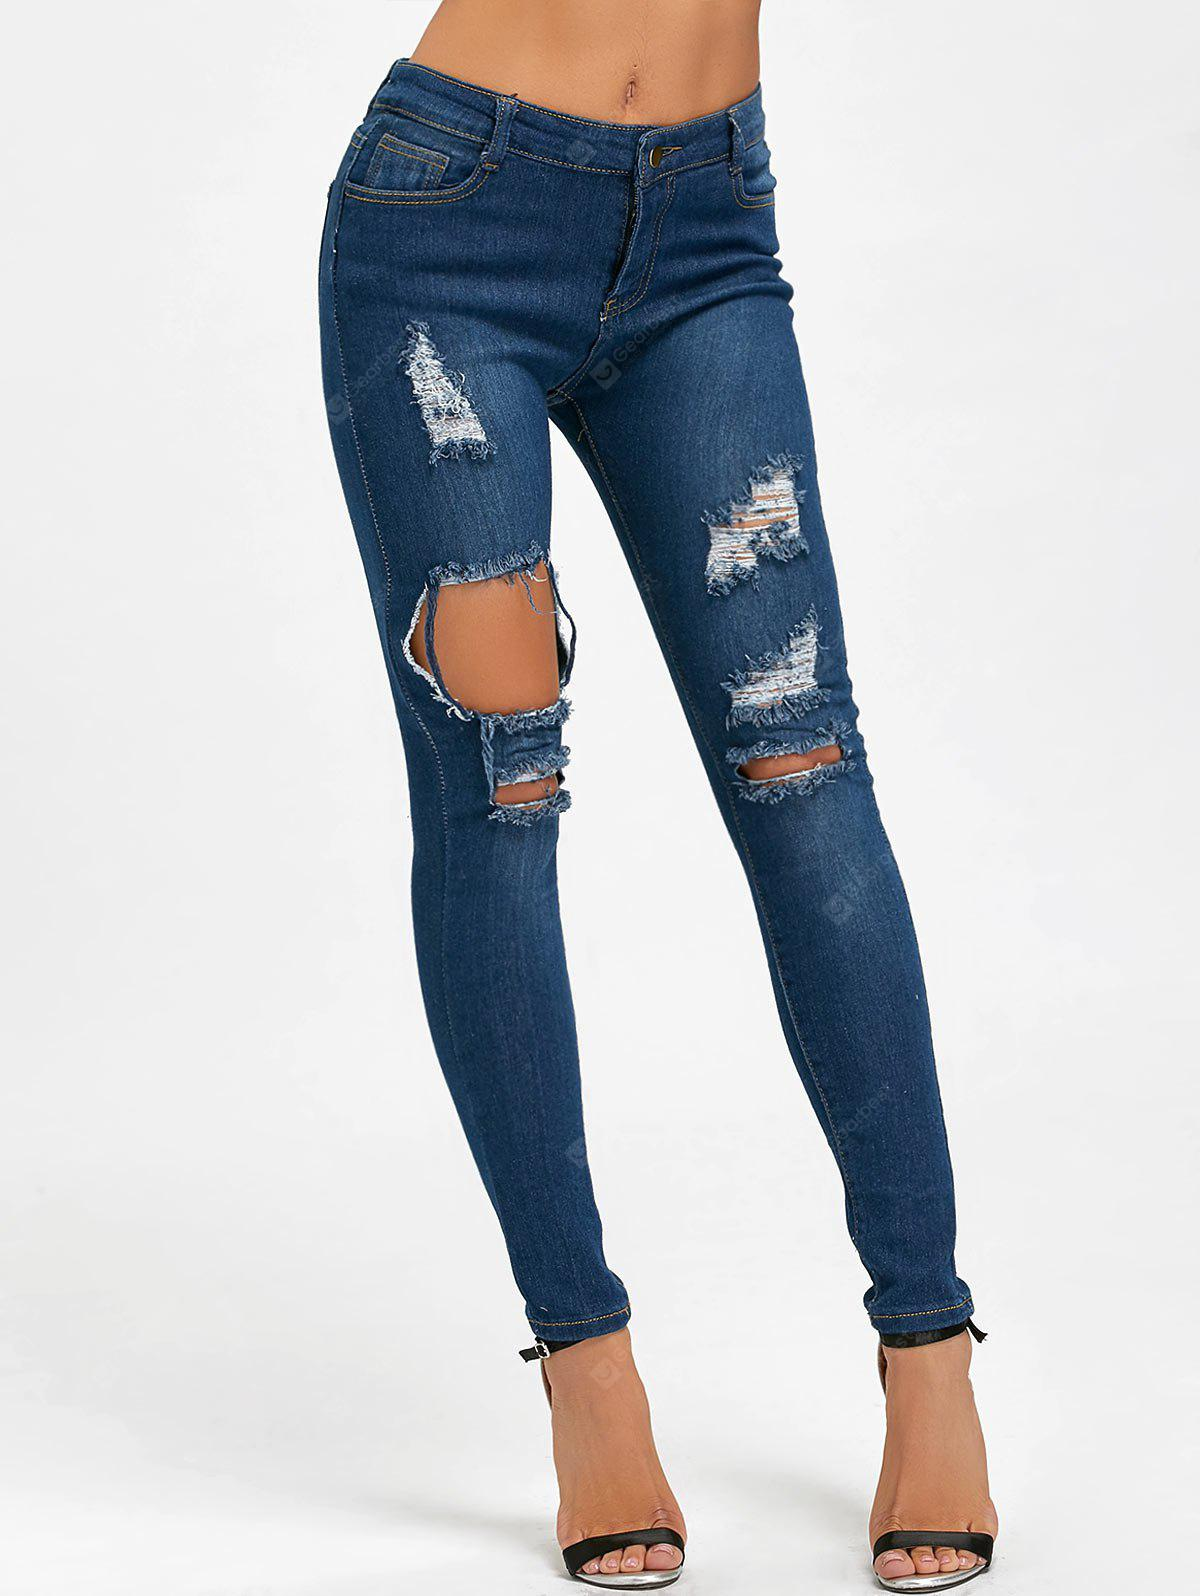 BLUE M Skinny High Waisted Ripped Distressed Jeans